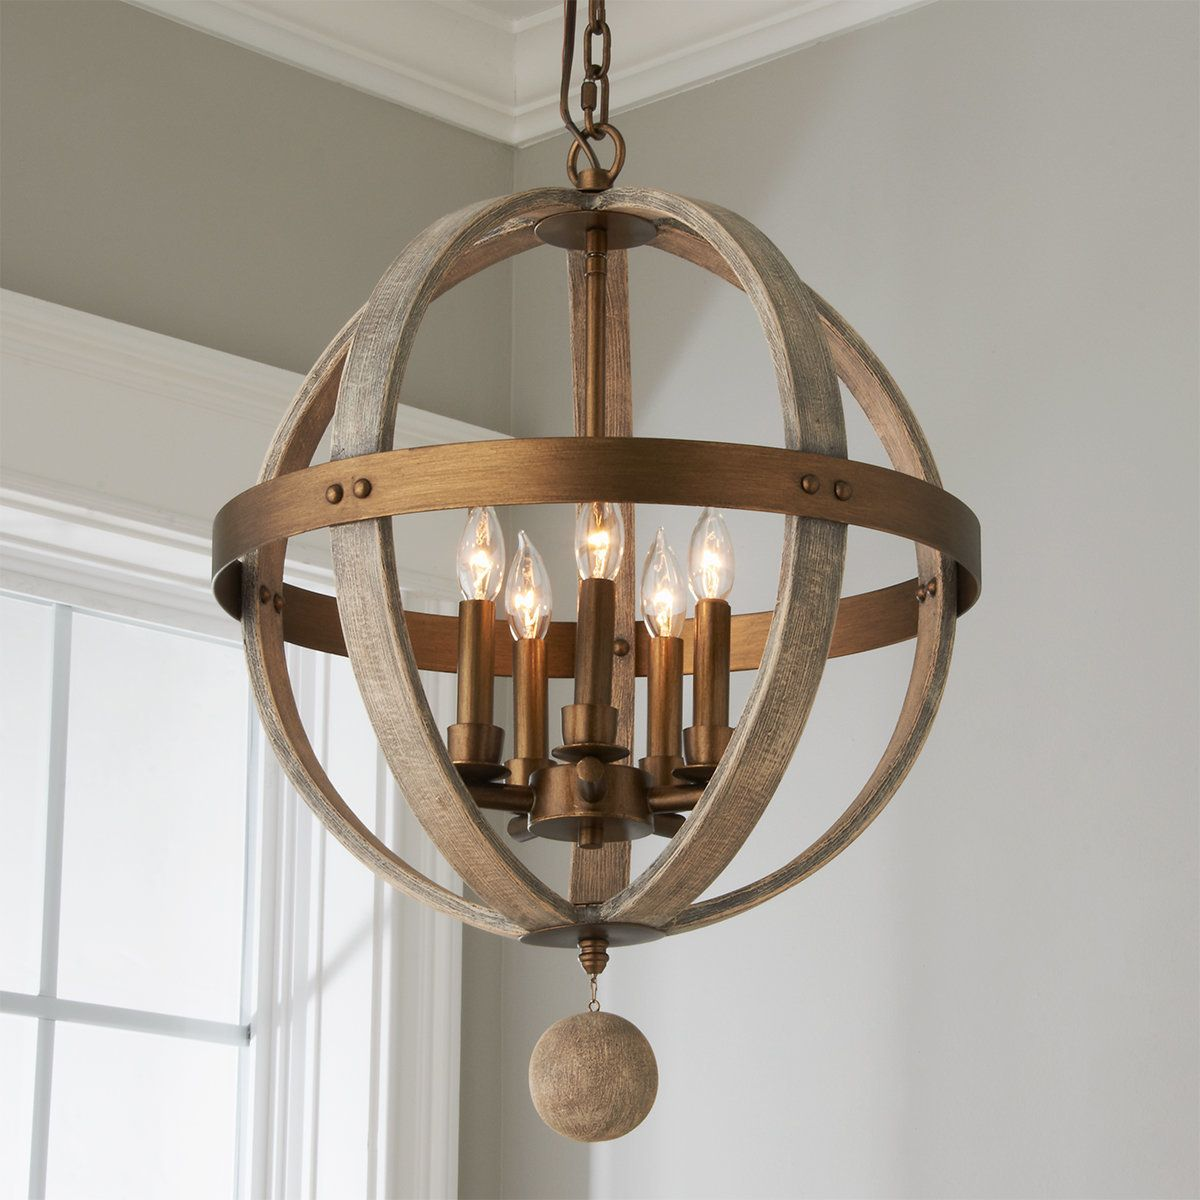 Refined Wood Globe Chandelier In 2021 Wood And Metal Chandelier Wooden Light Fixtures Globe Chandelier